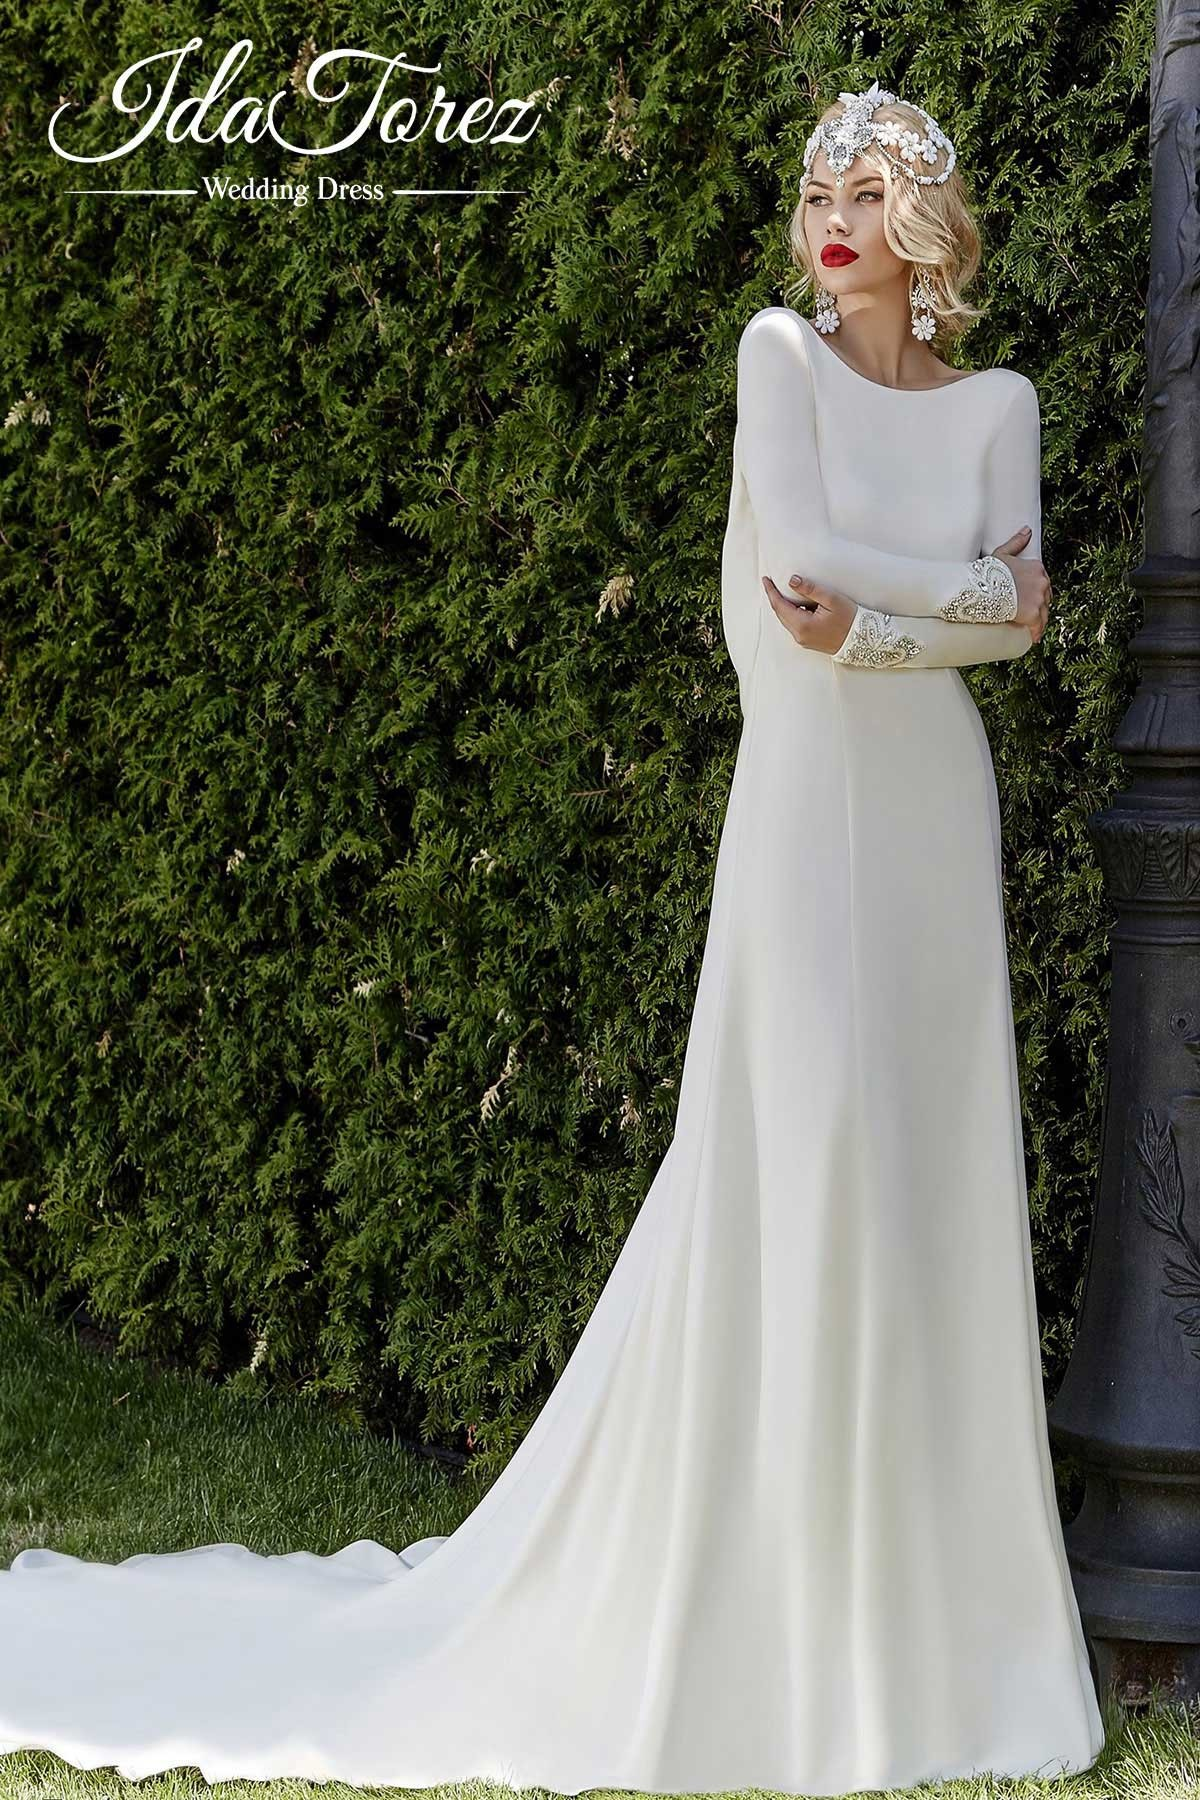 Sheath column court train stretch crepe wedding dress draped 01010 pretty sheath column bateau natural court train stretch crepe ivory long sleeve open back wedding dress draped 01010 junglespirit Gallery